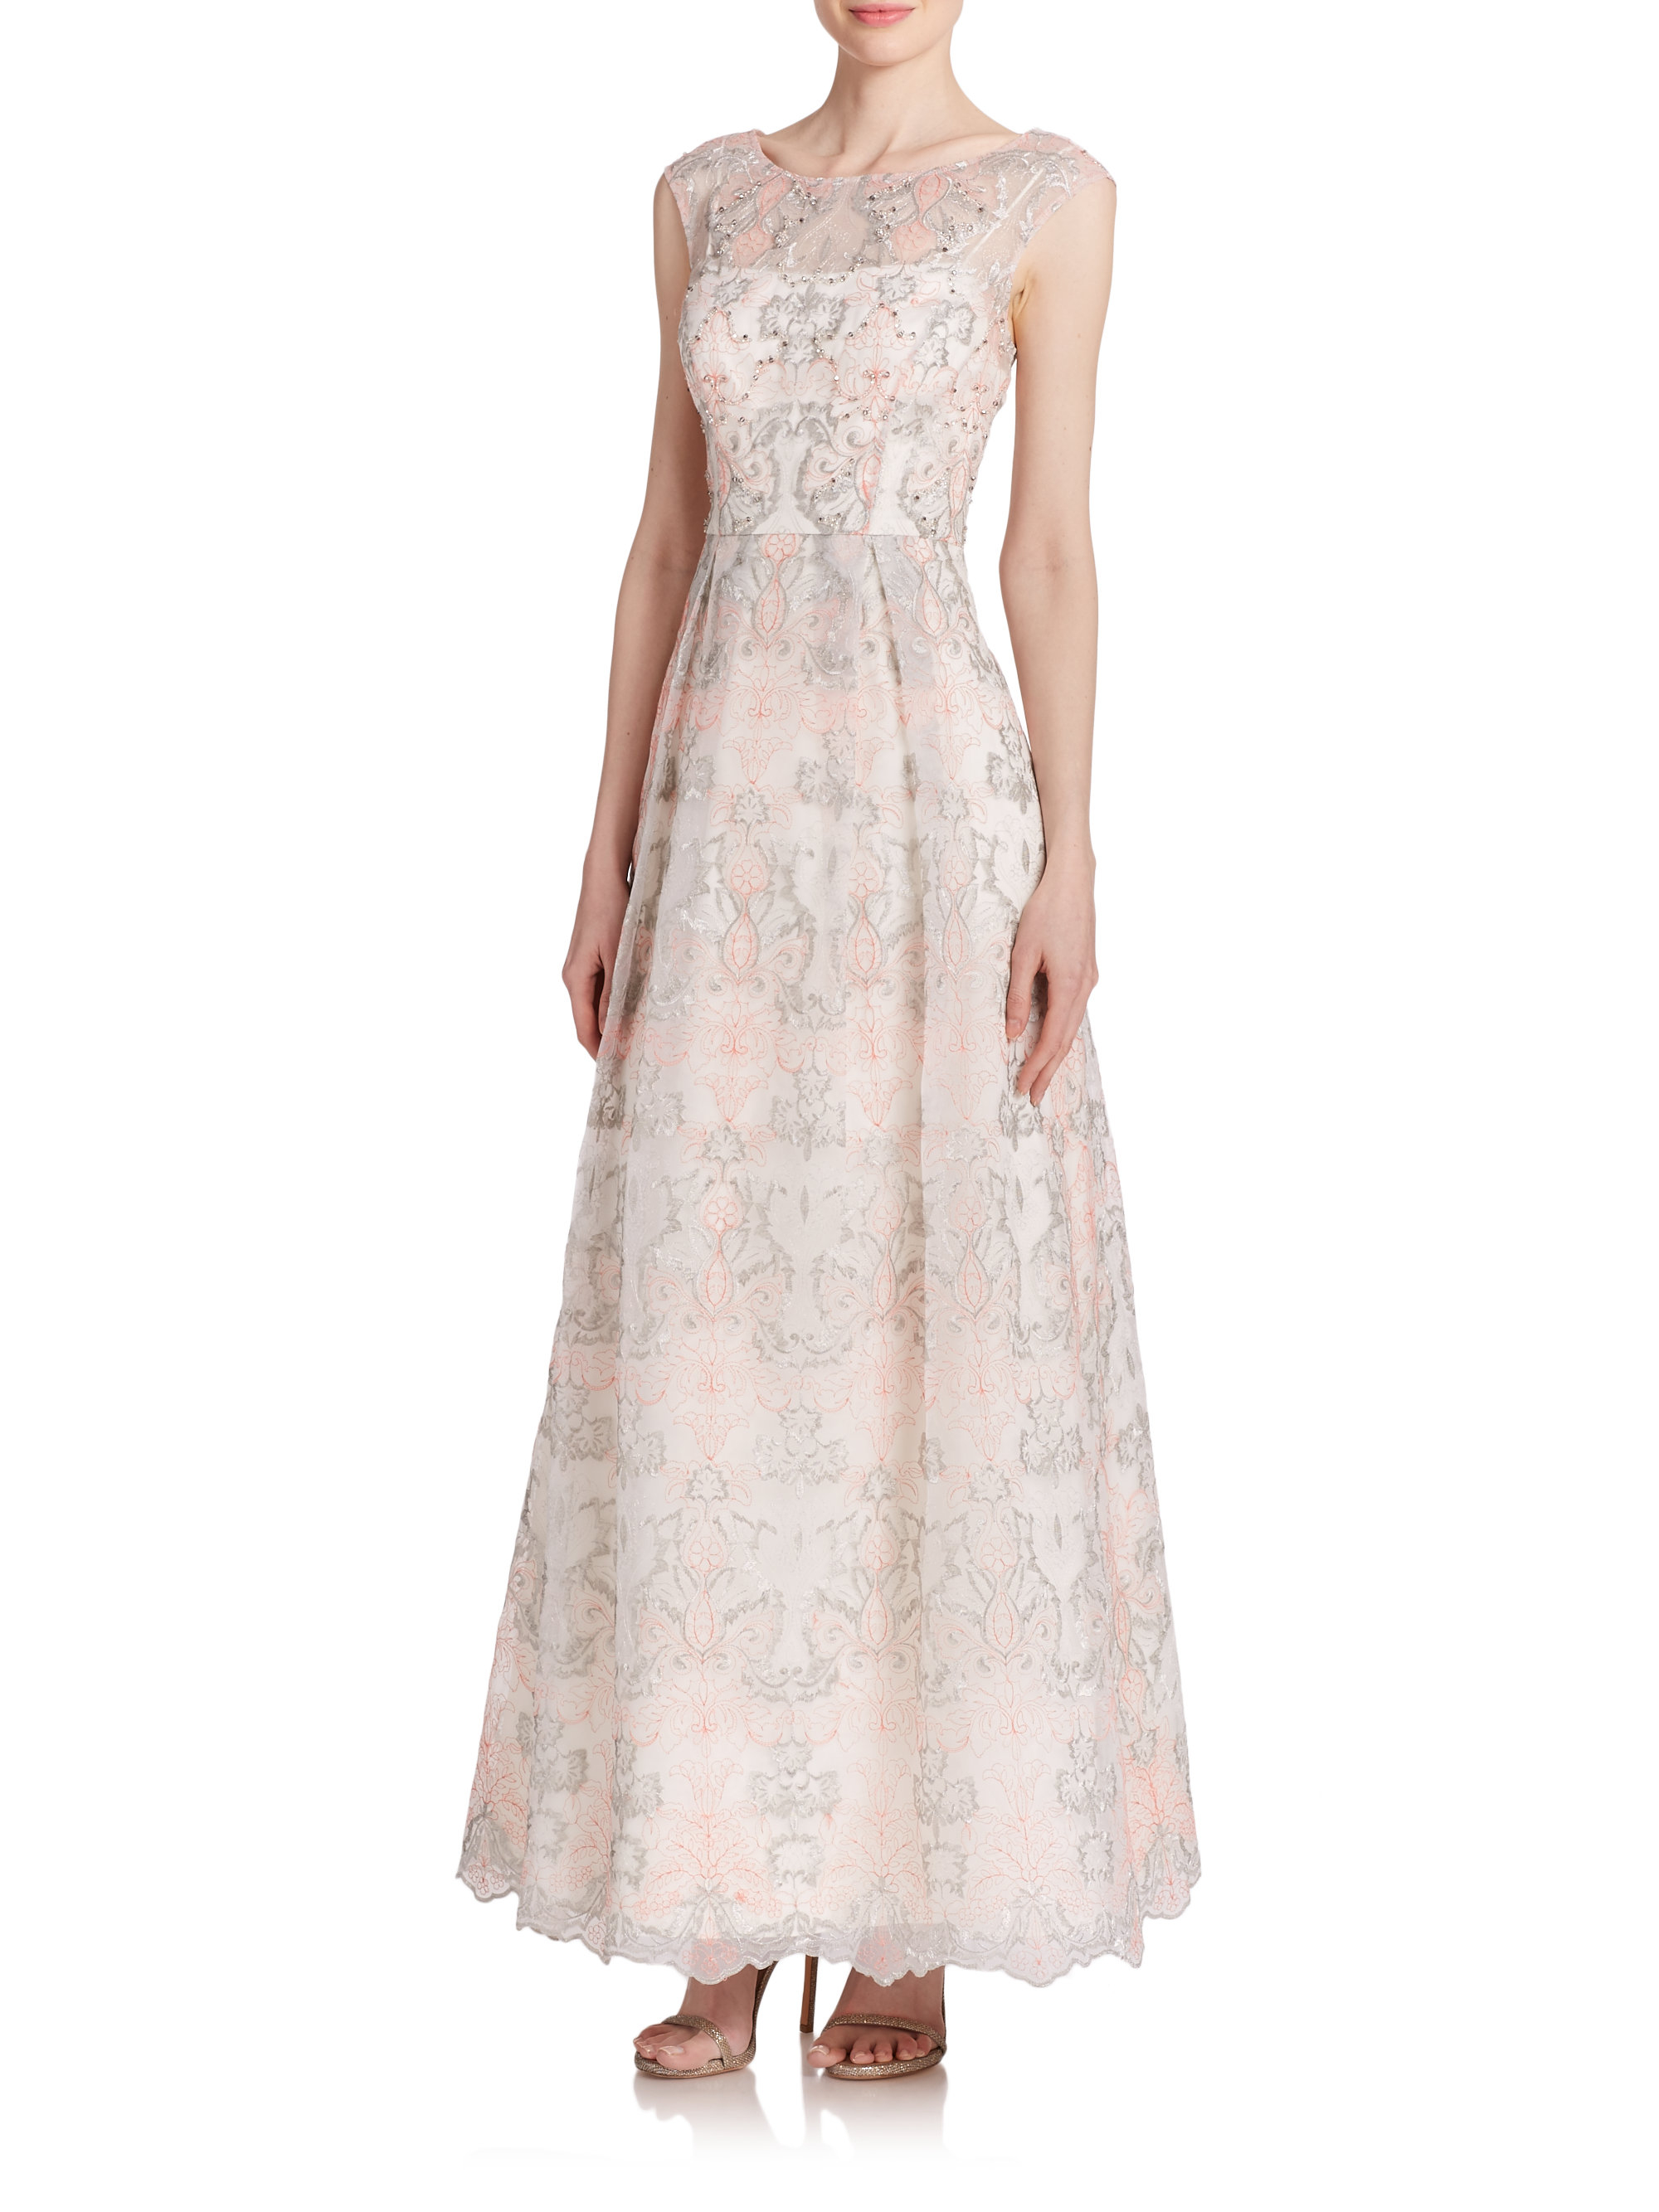 Lyst - Kay Unger Floral Lace Gown in Pink